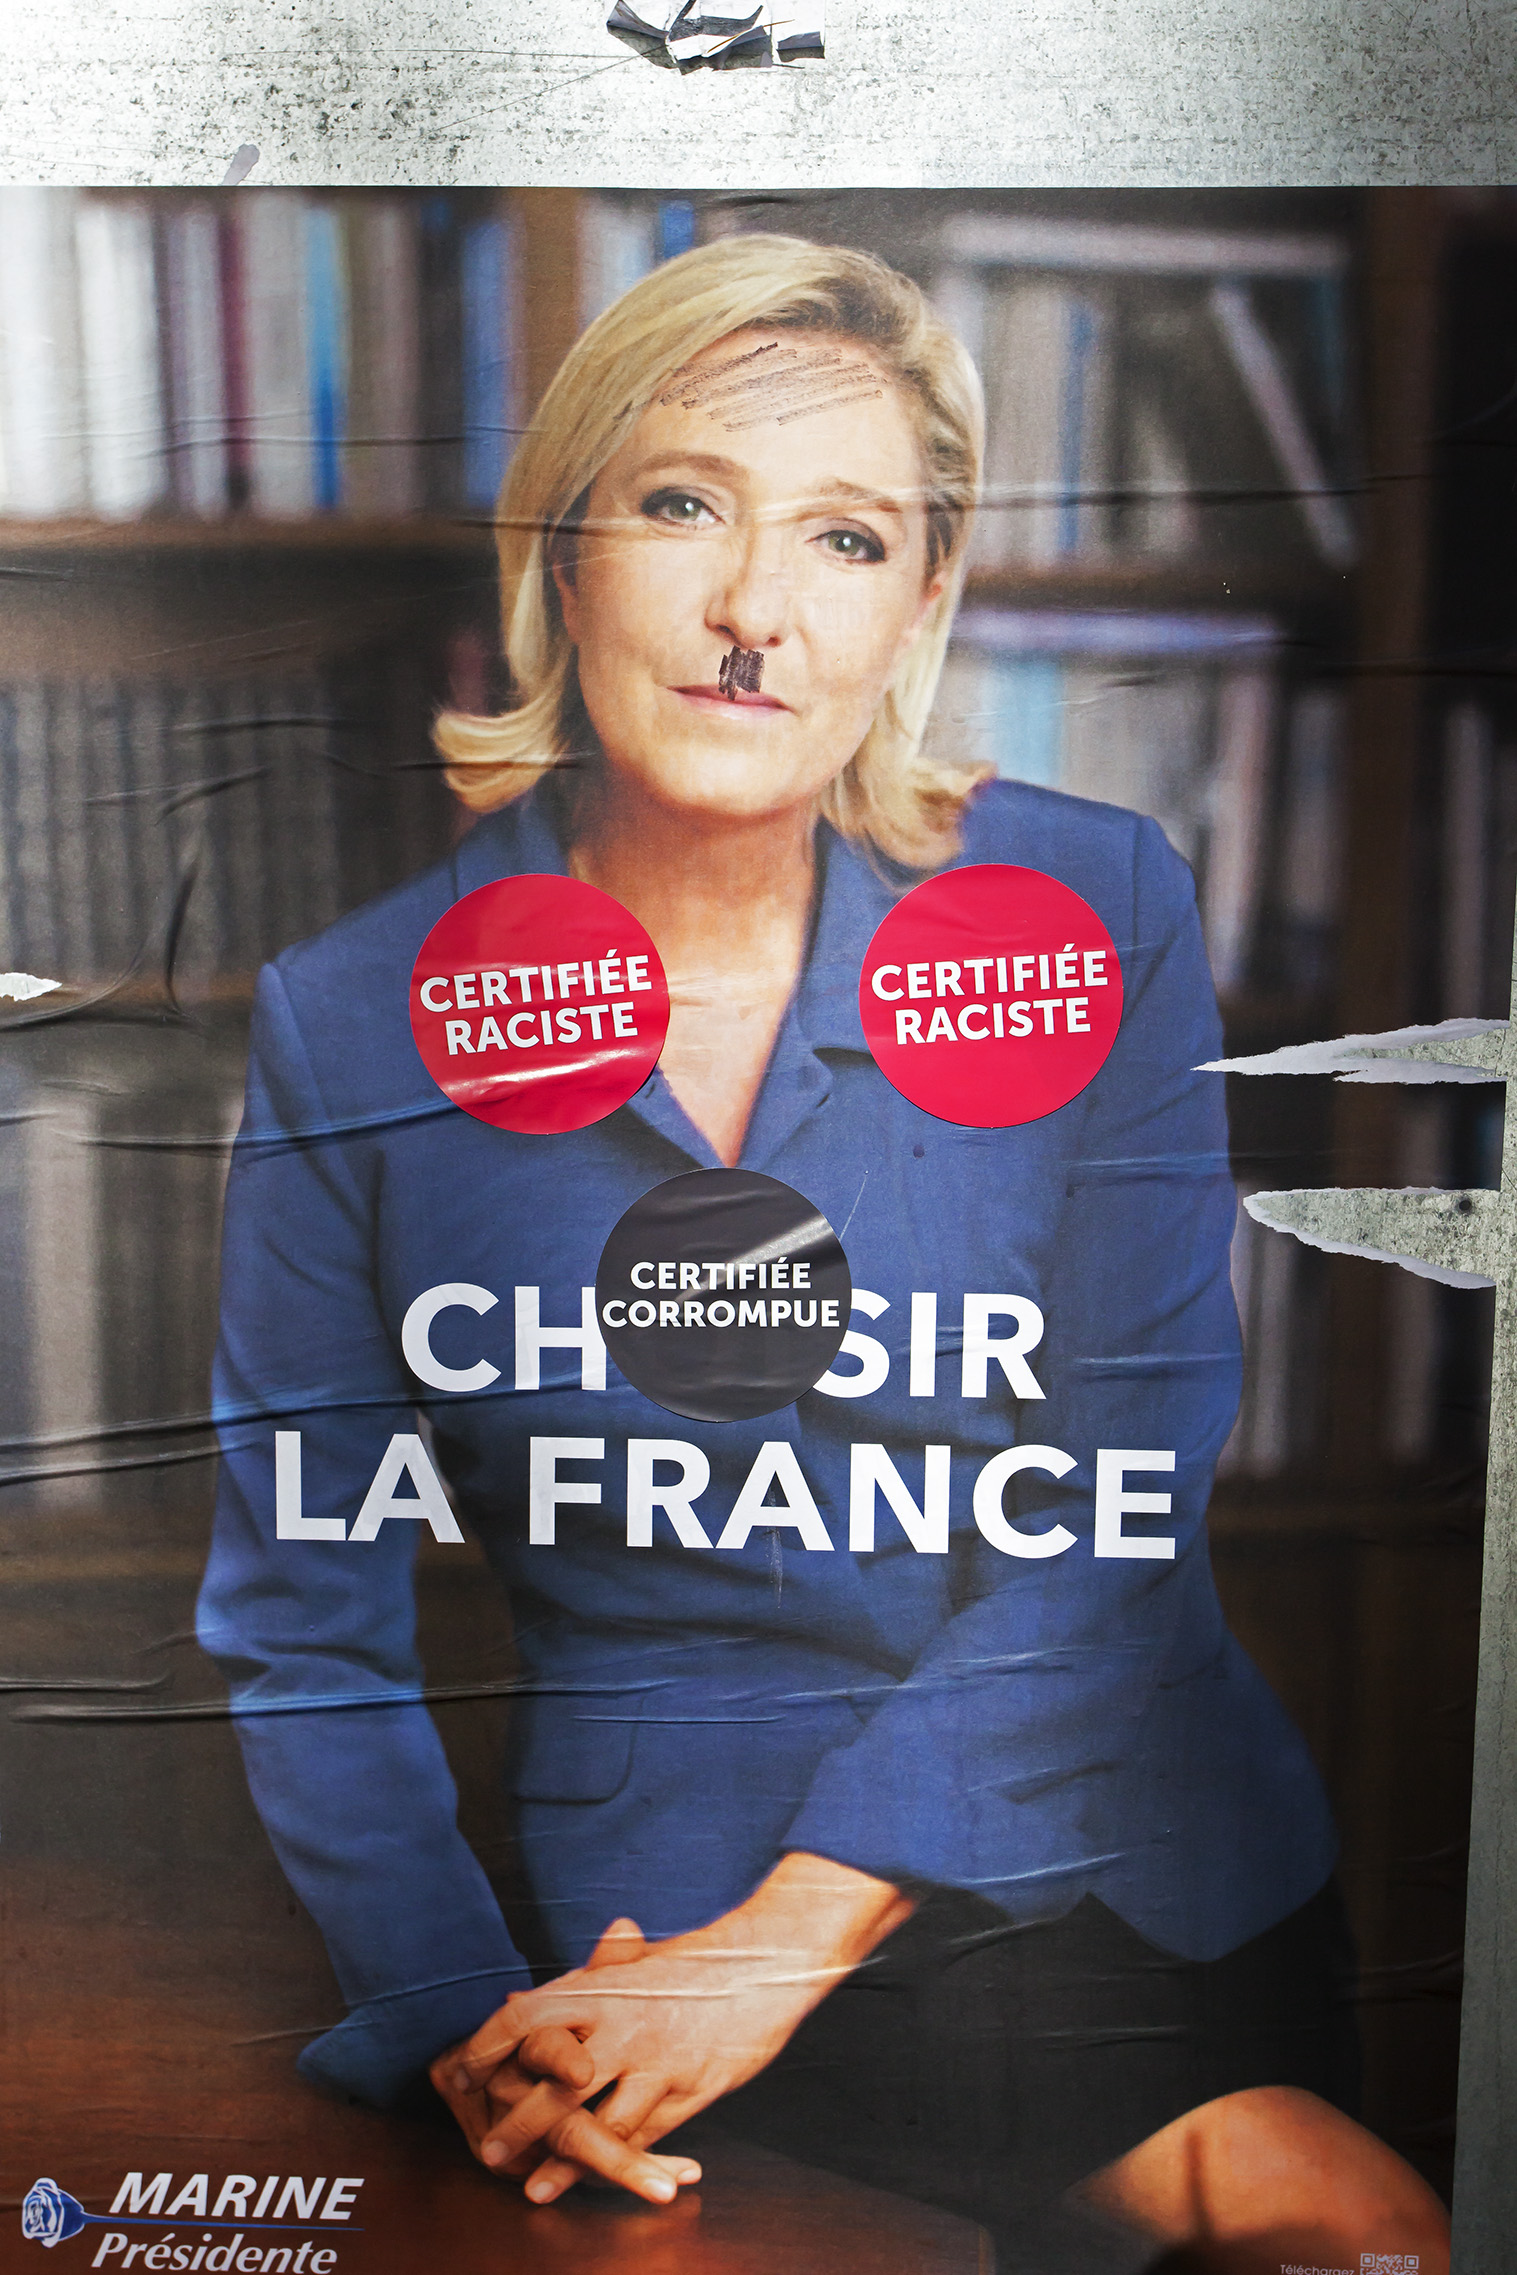 French politics greets us as we stroll through downtown Besançon. The parallels between the election here, which happens Sunday, and the recent elections in America and Great Britain are pretty scary.